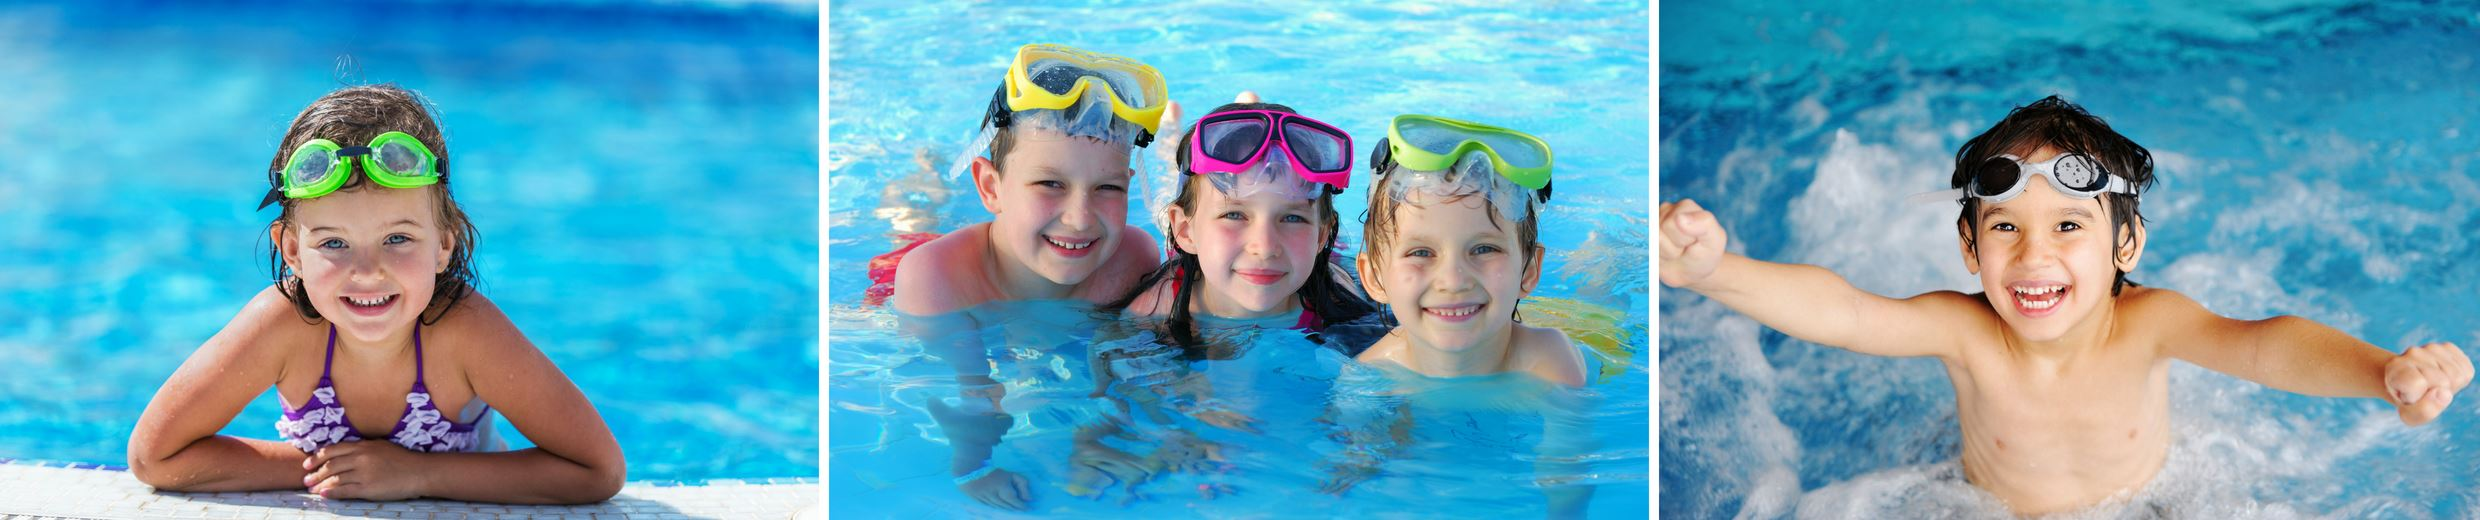 Children swimming in pool